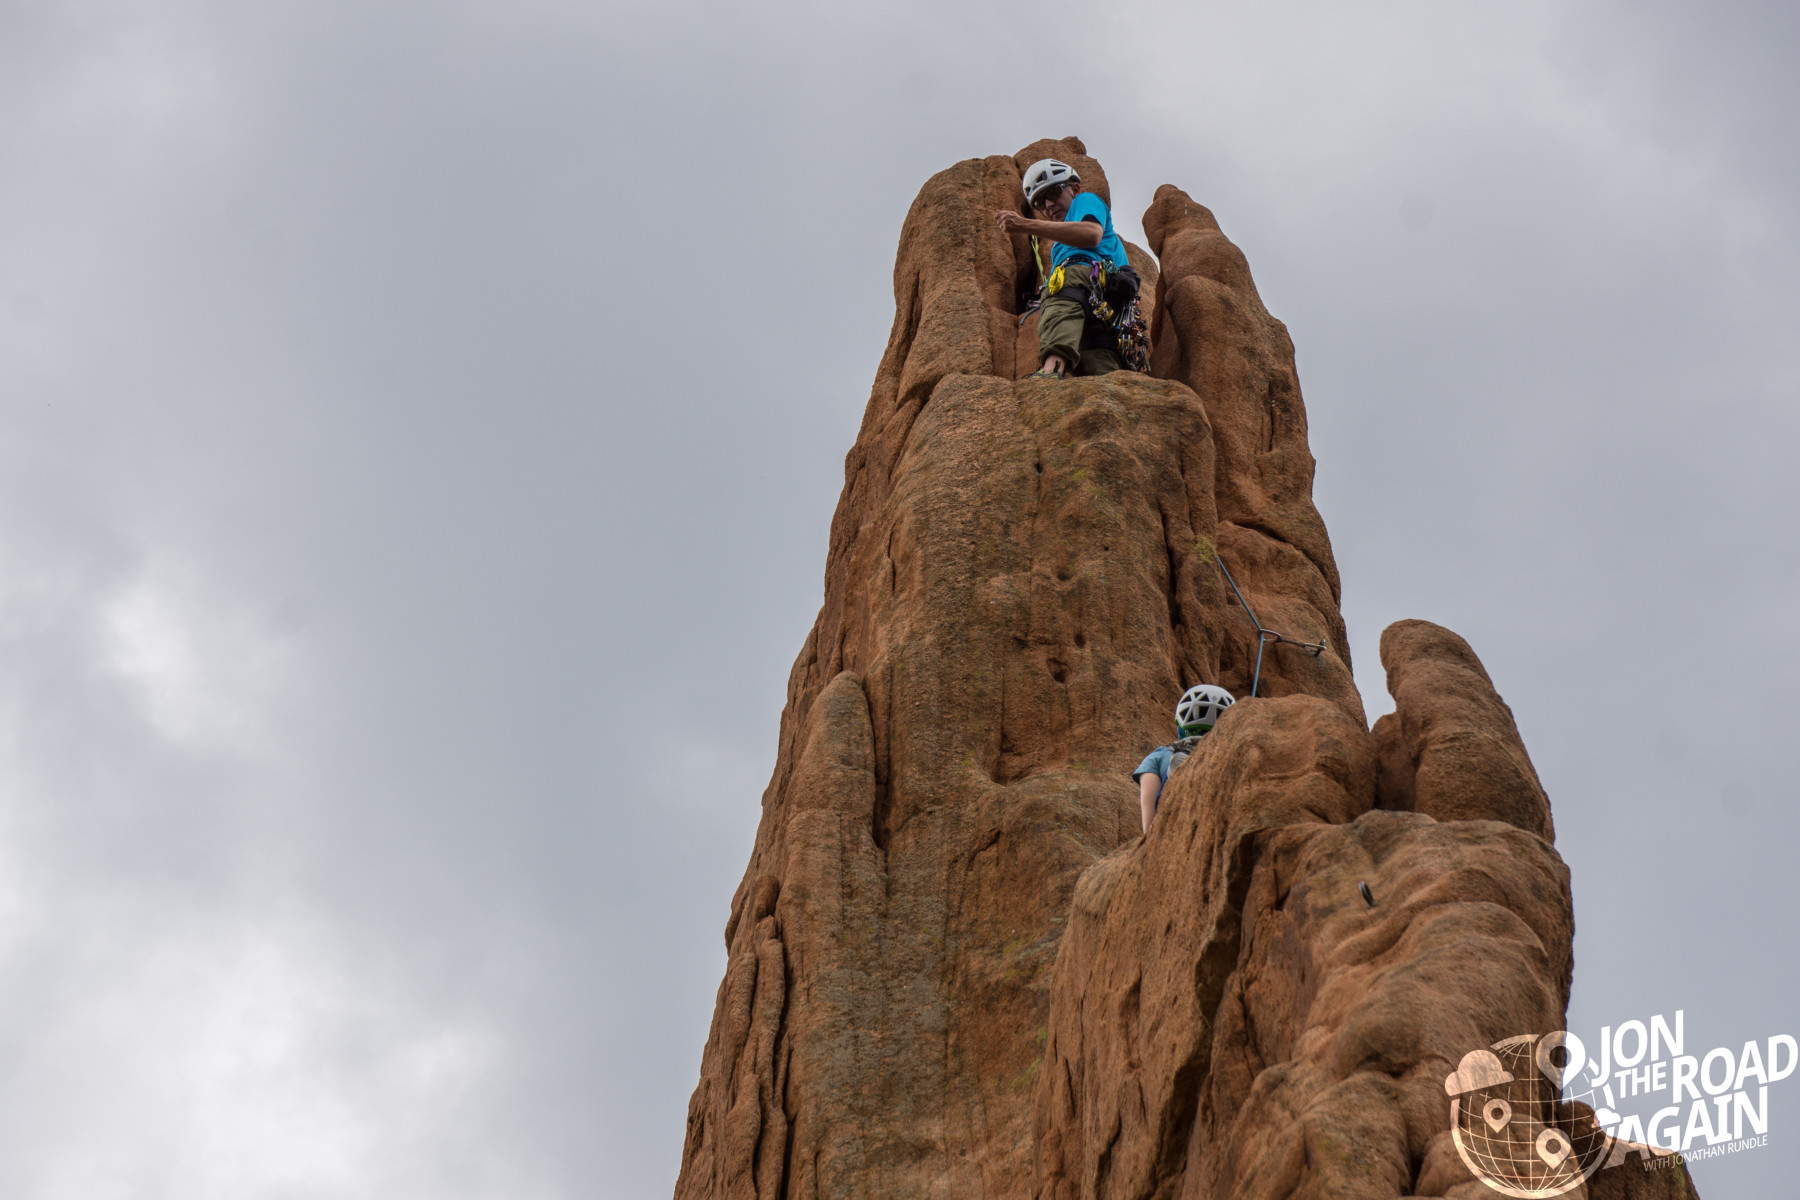 Garden of the Gods rock climbers